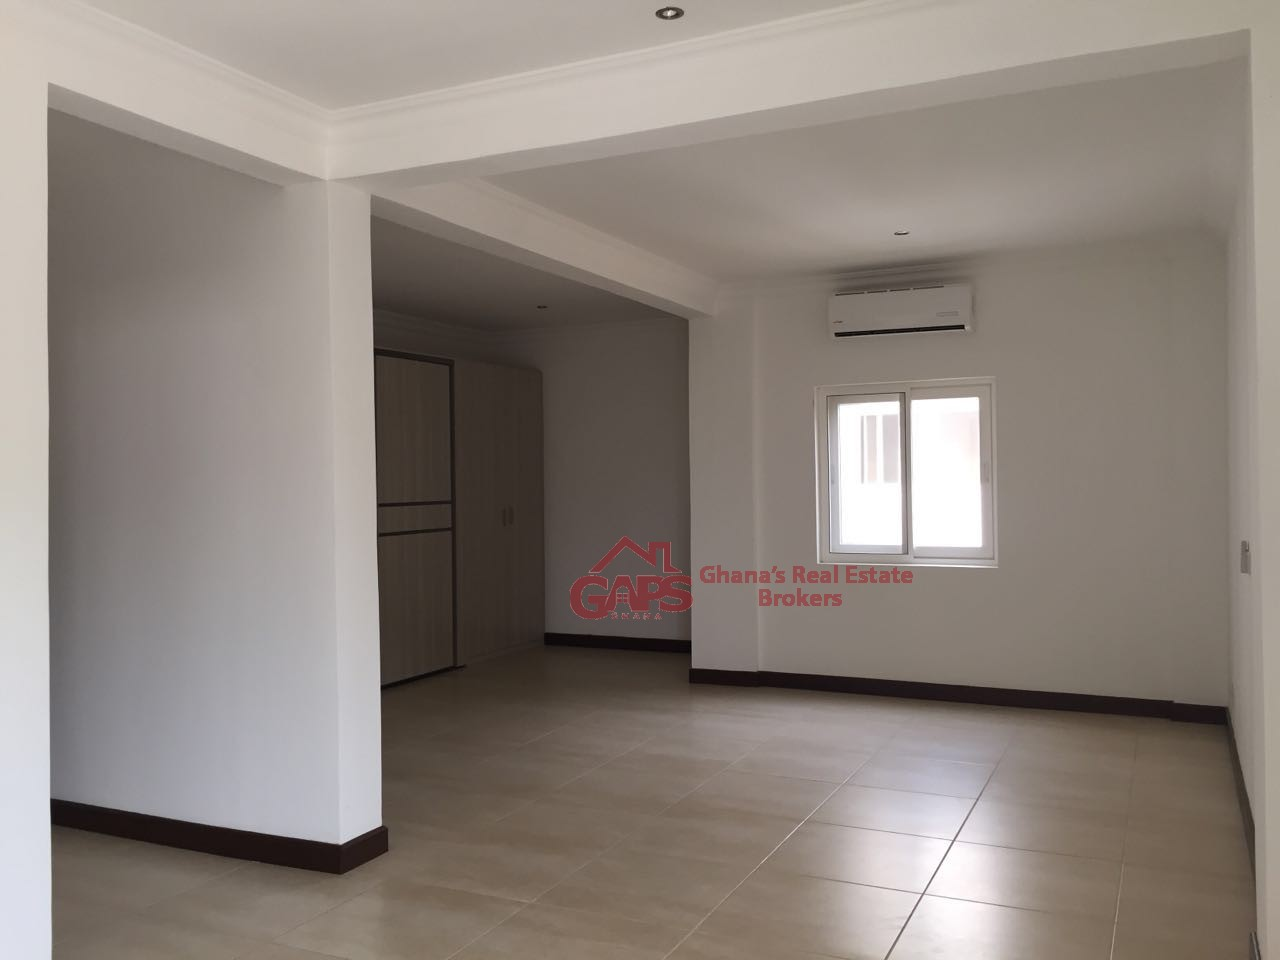 4 bedroom townhouse for rent at cantonments gaps ghana